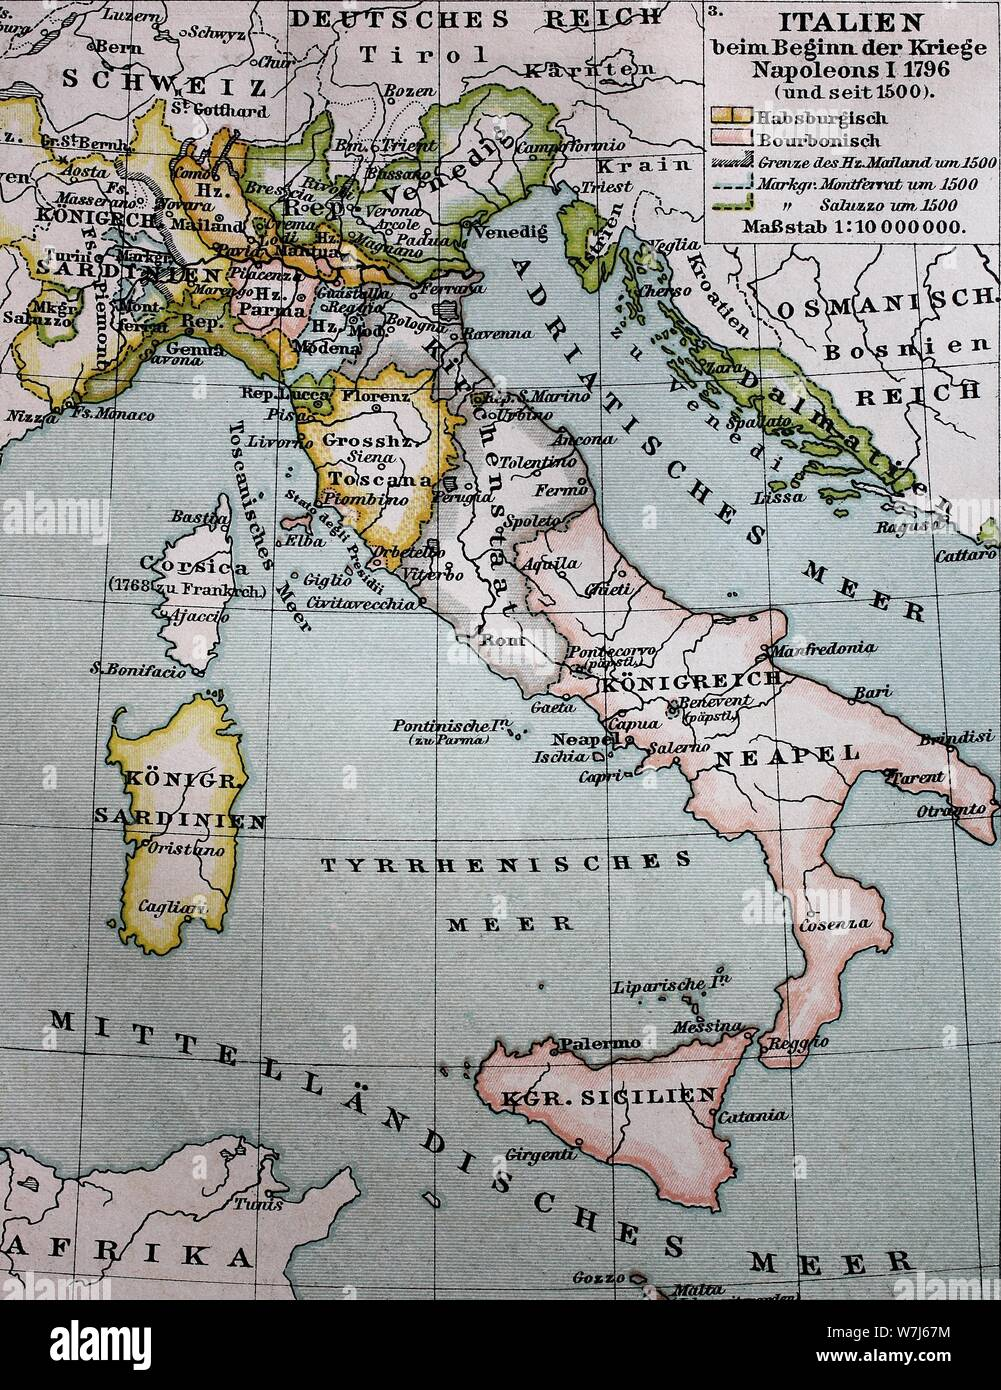 Map Of Italy From 1500 To The Beginning Of The Wars Napoleon I